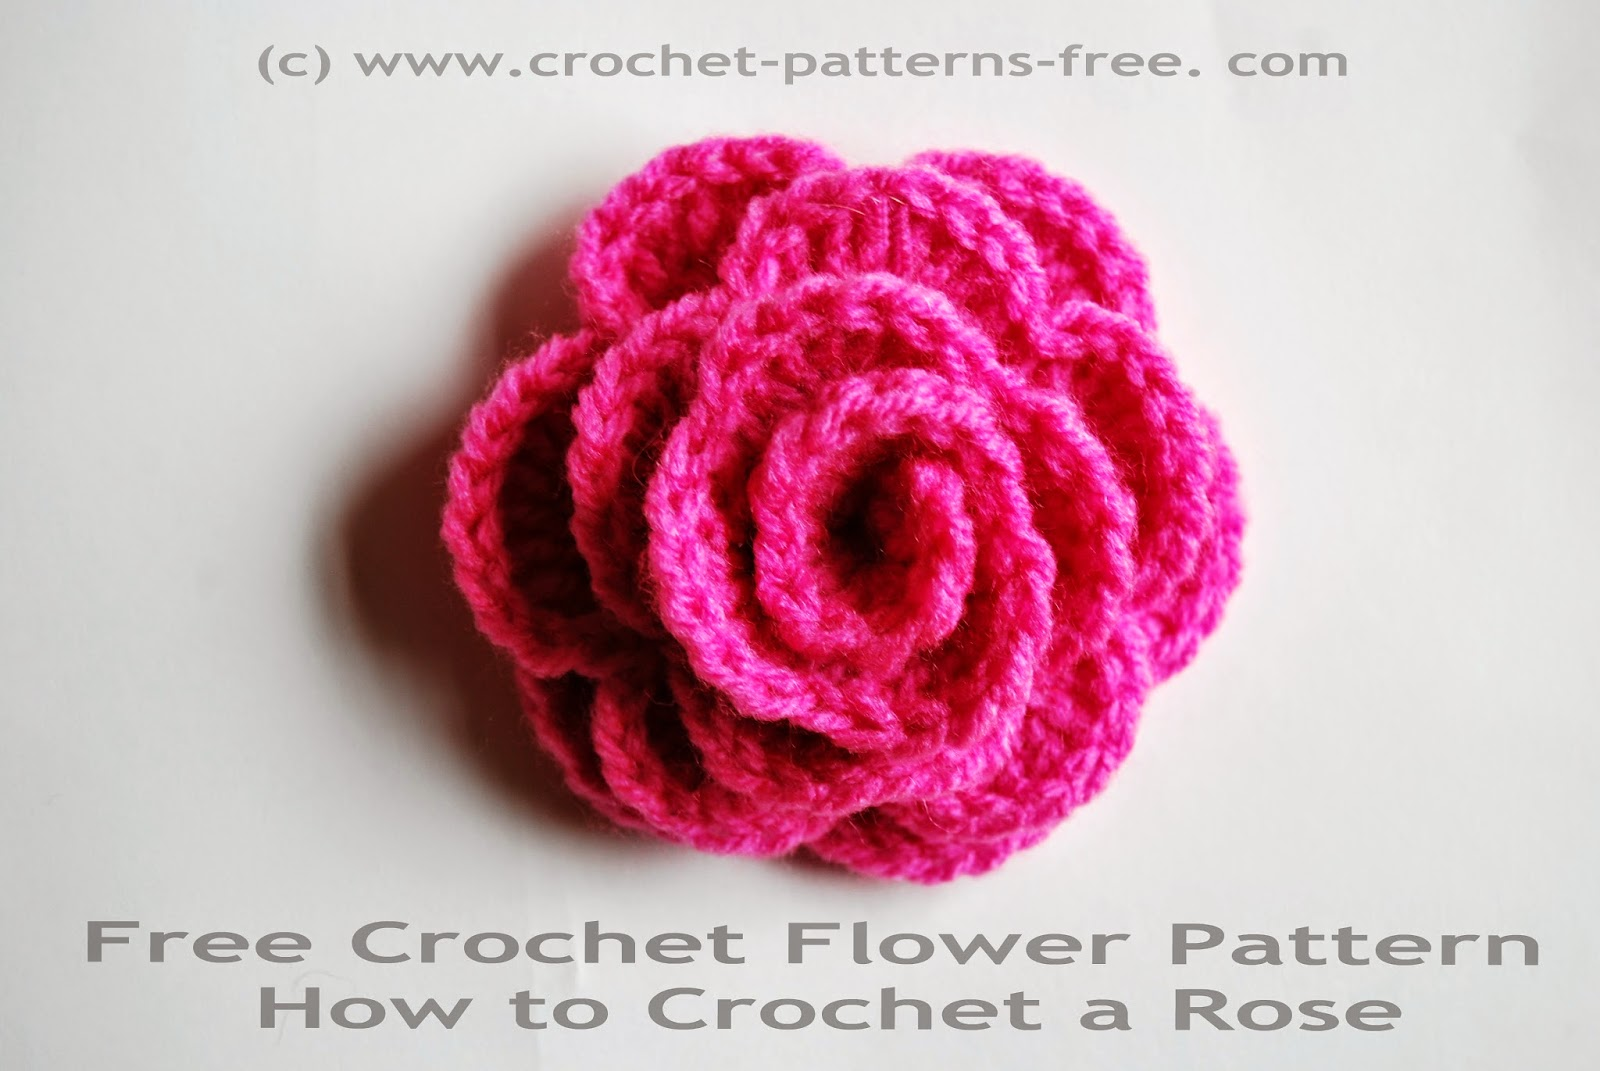 Free Crochet Flower Pattern How to crochet a rose FREE ...